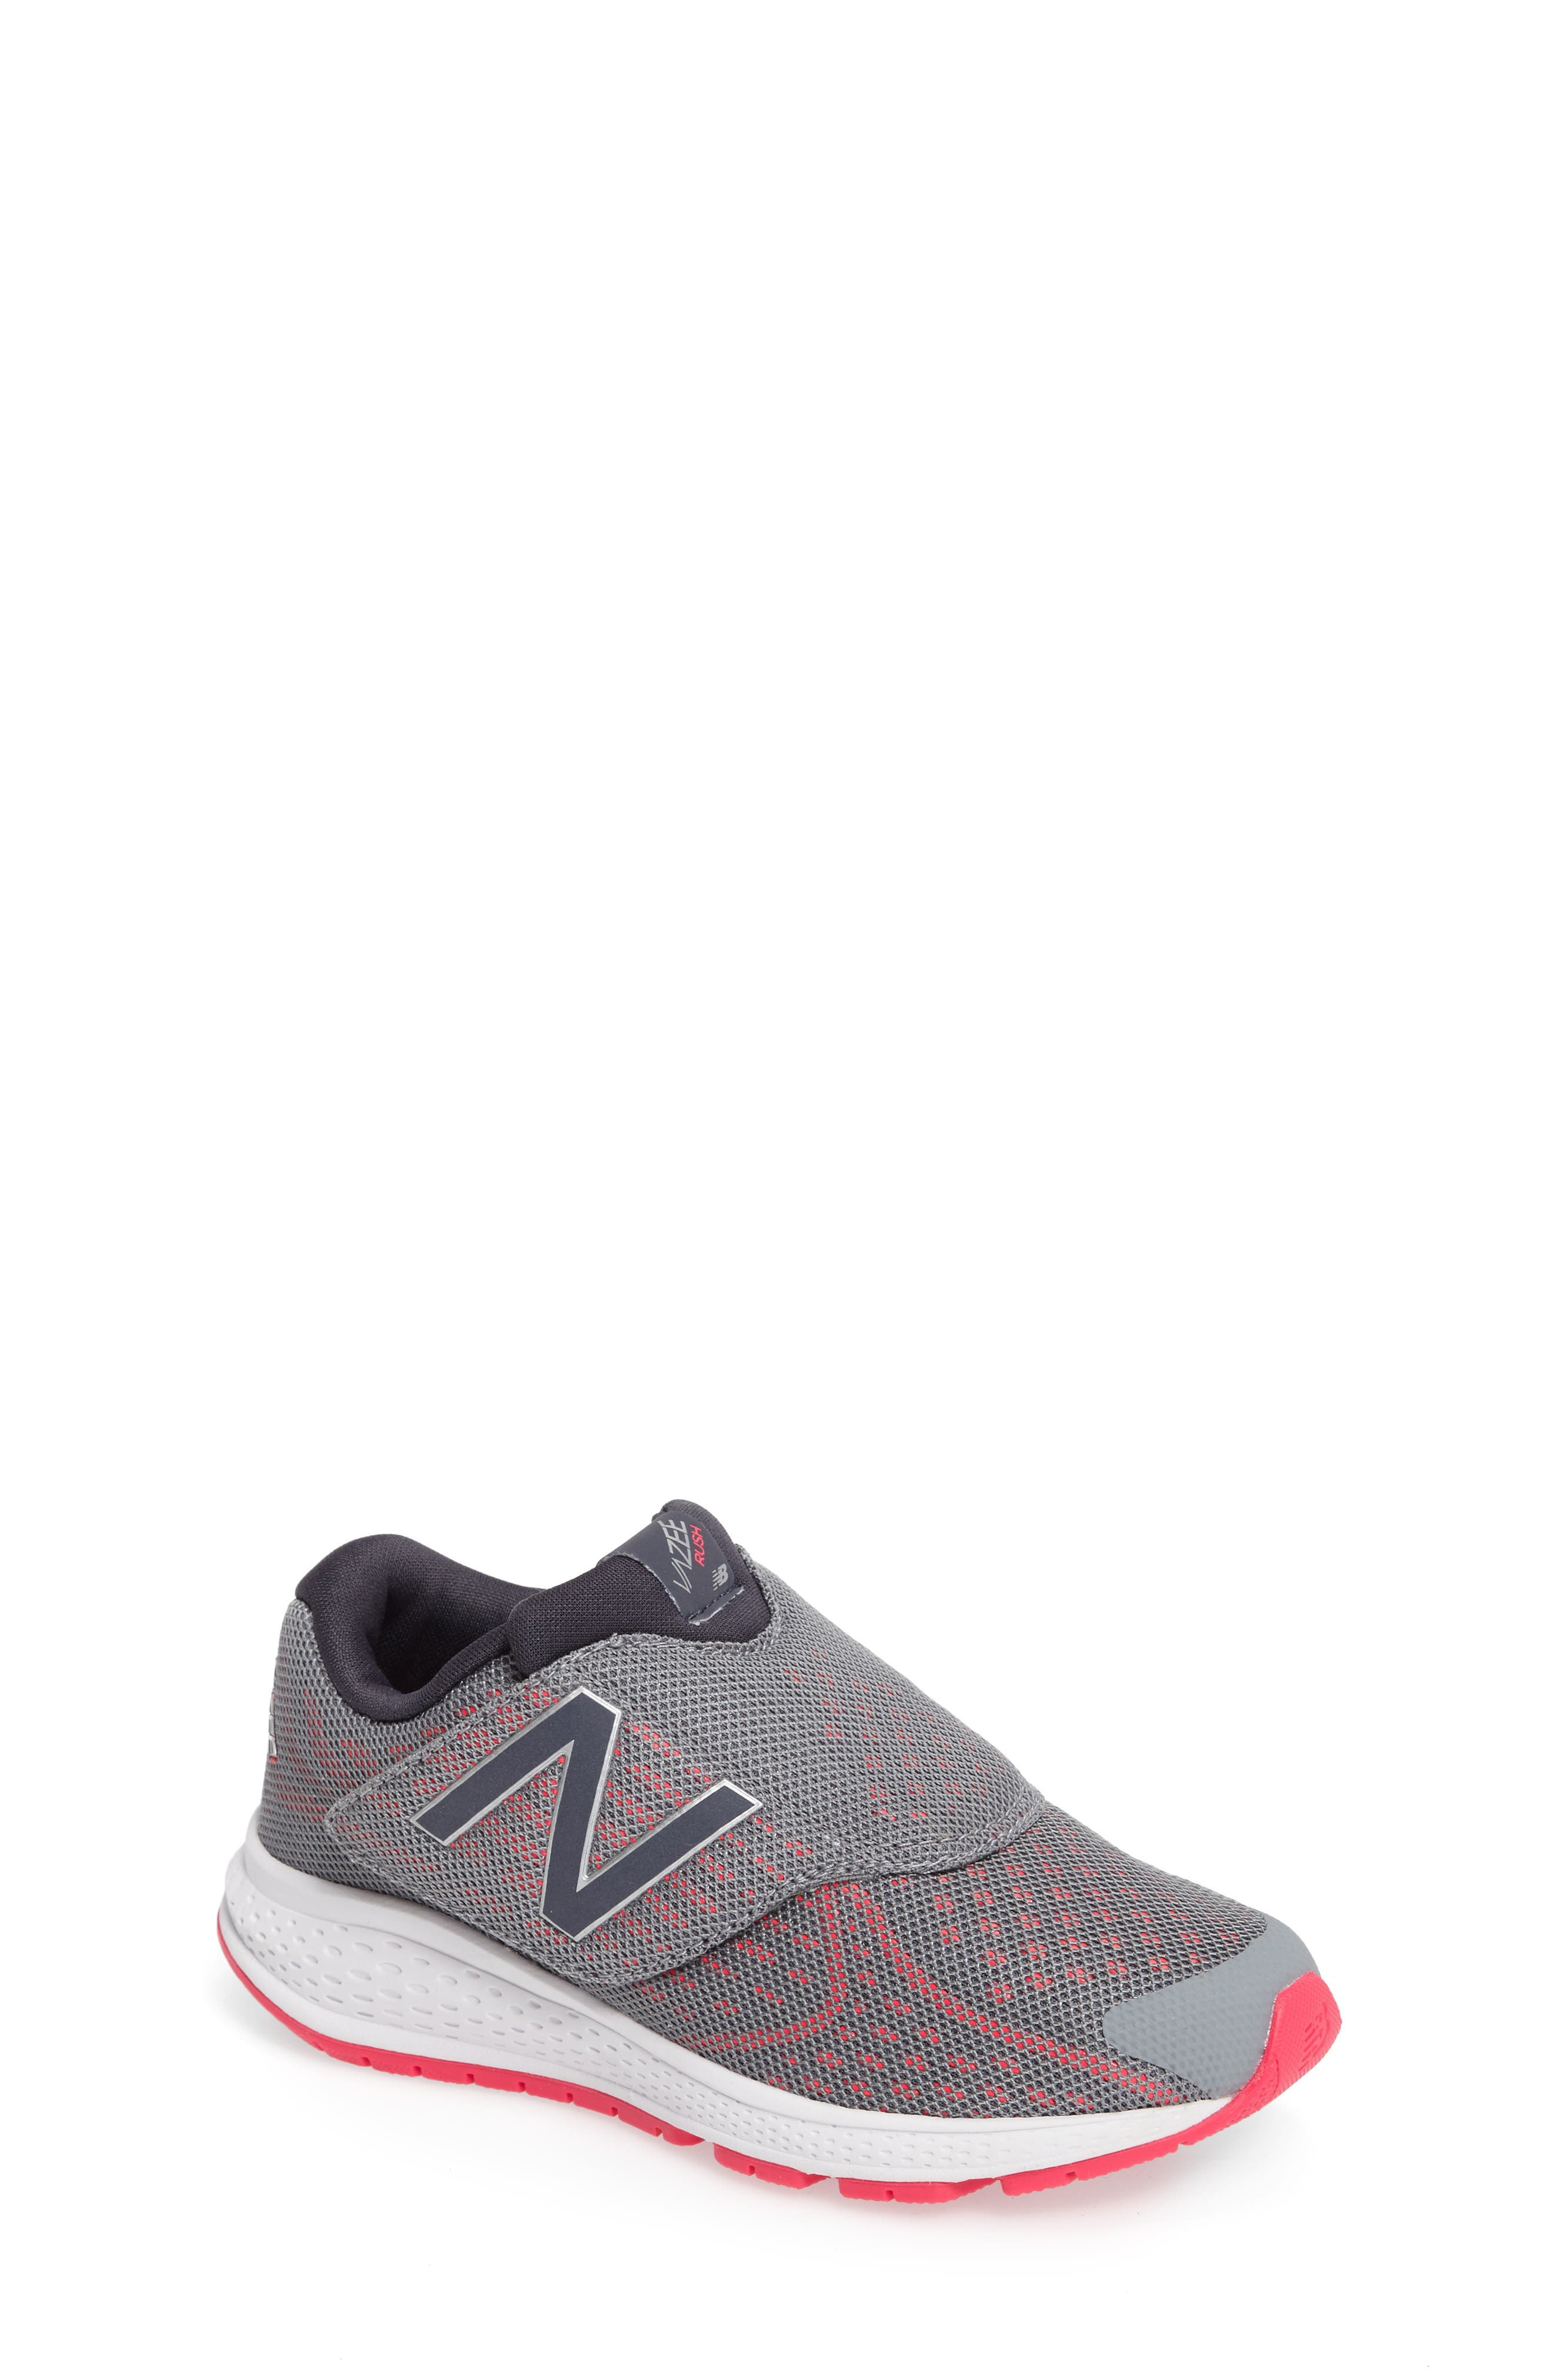 New Balance Vazee Athletic Shoe (Baby, Walker, Toddler & Little Kid)